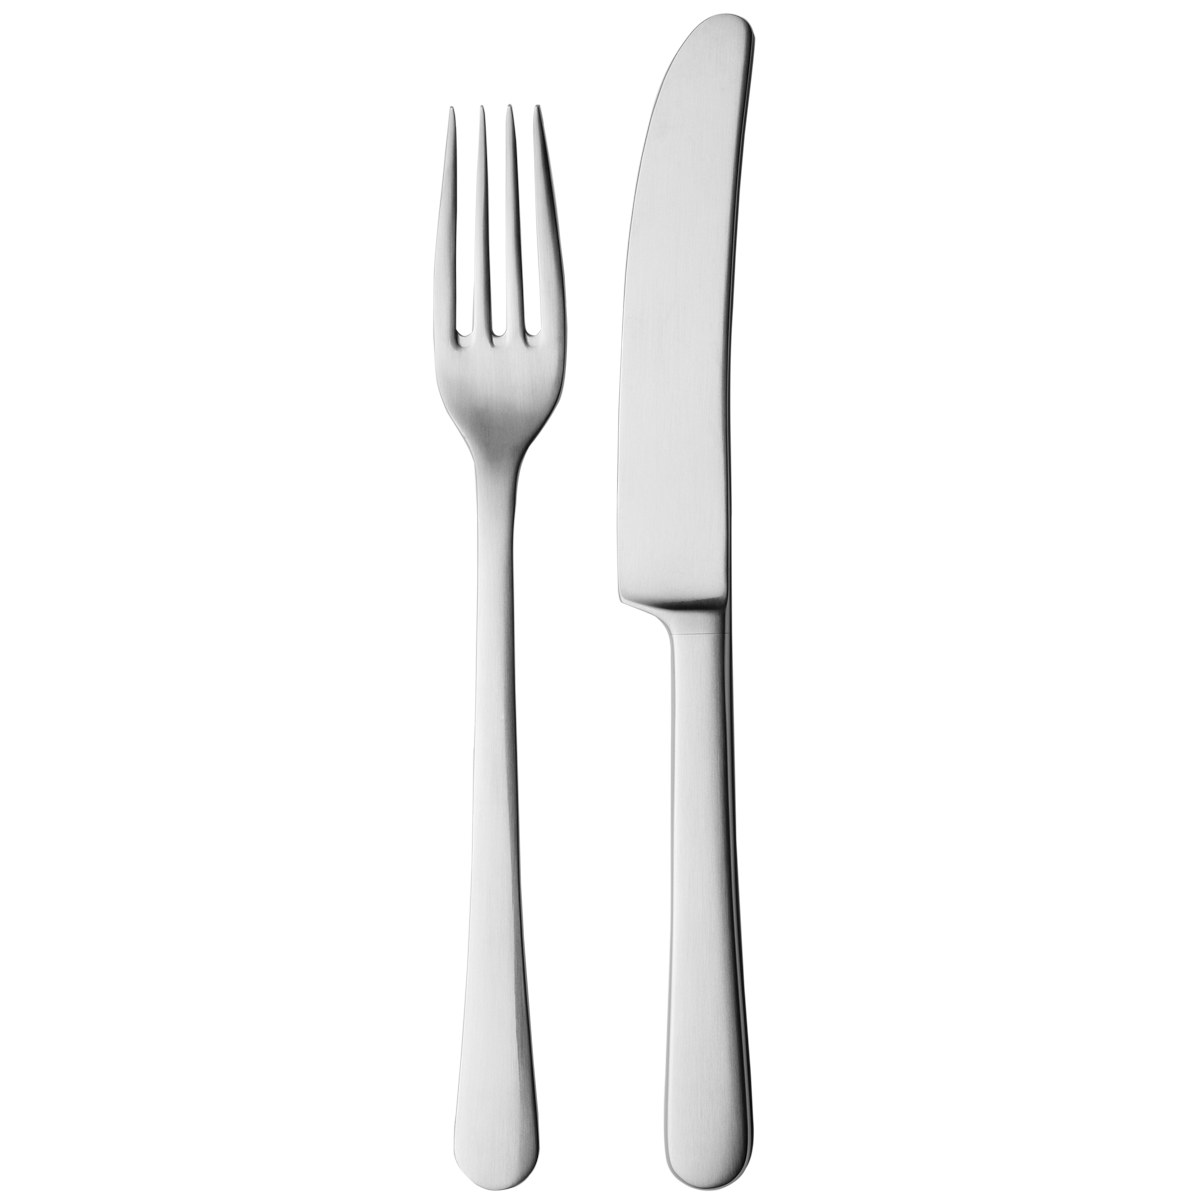 High-quality Fork And Knife Cliparts For Free! image #3656